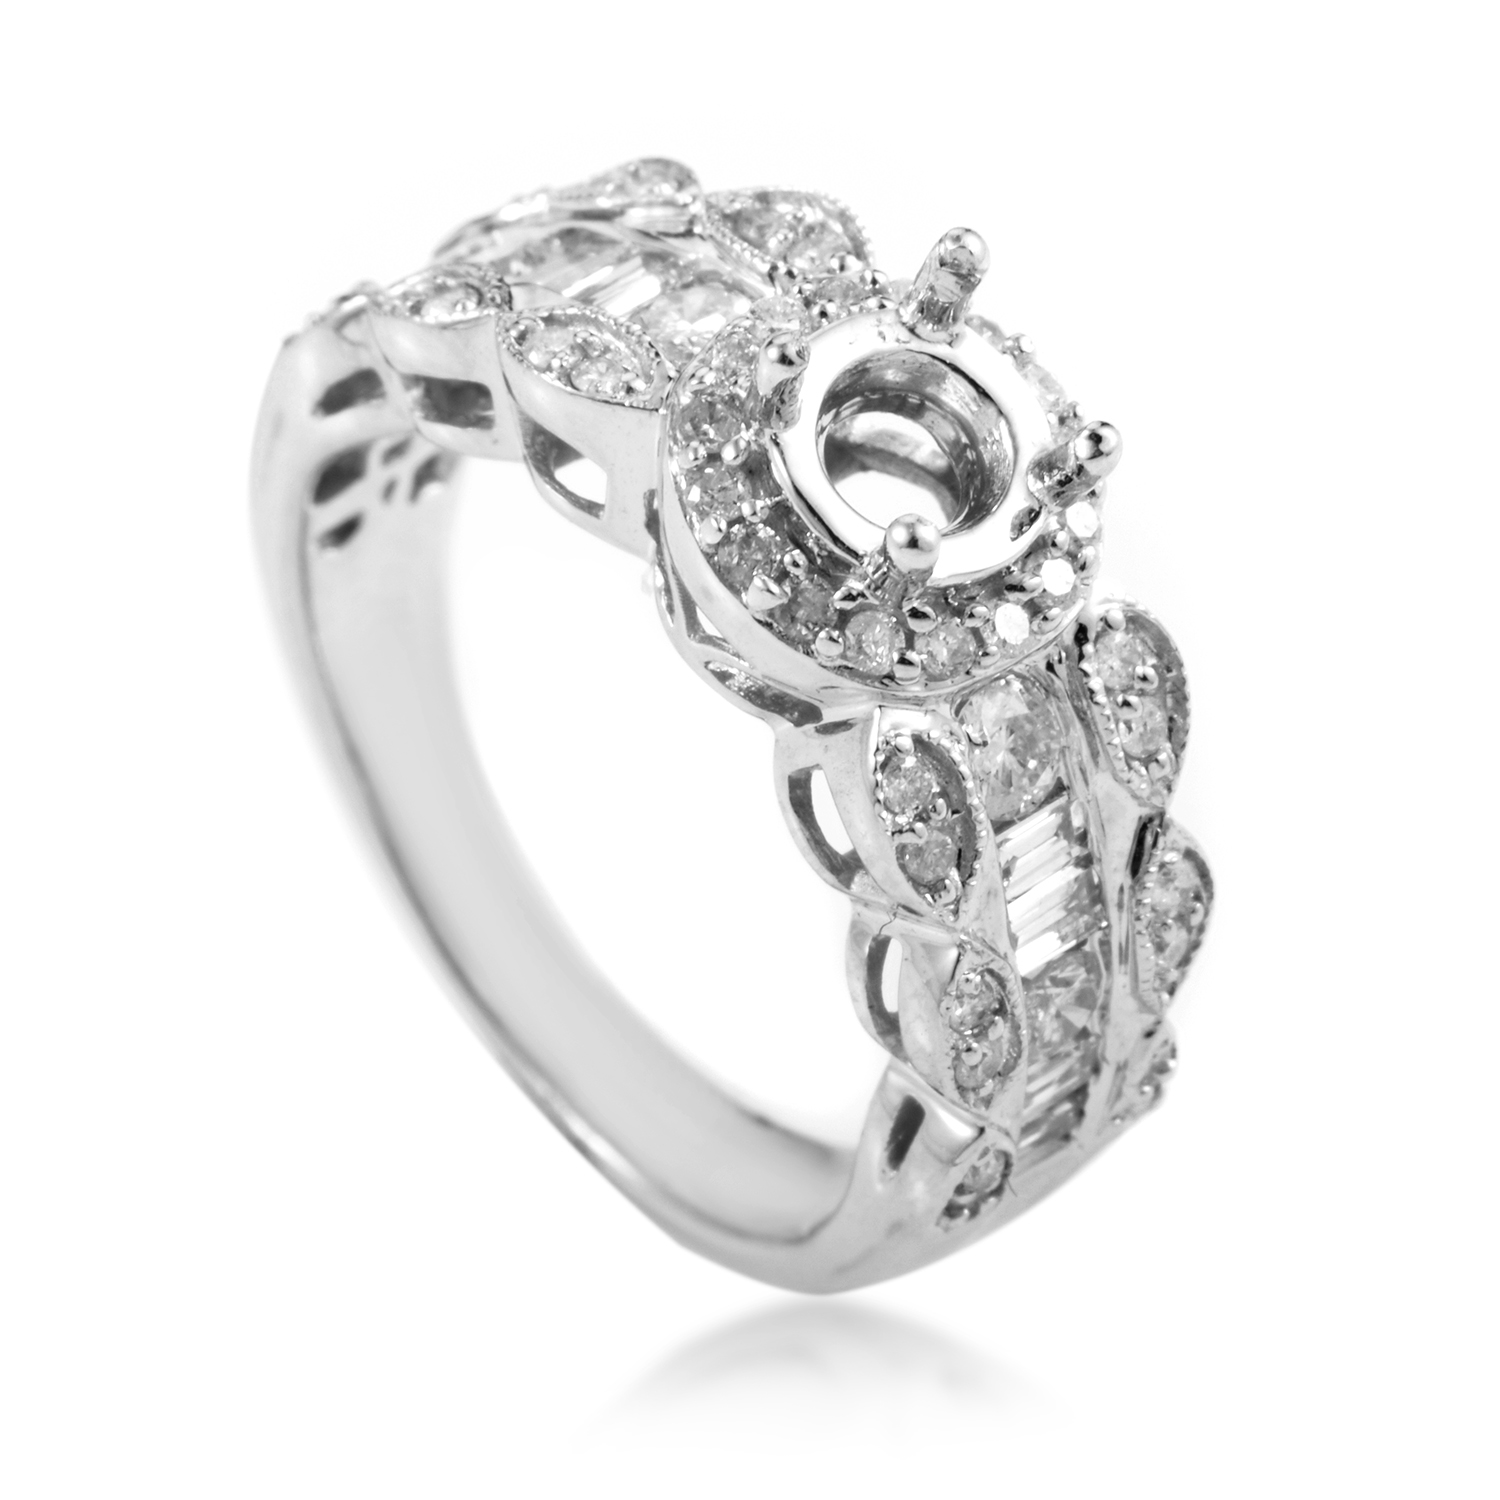 14K White Gold Diamond Engagement Ring Mounting SM4-081501W